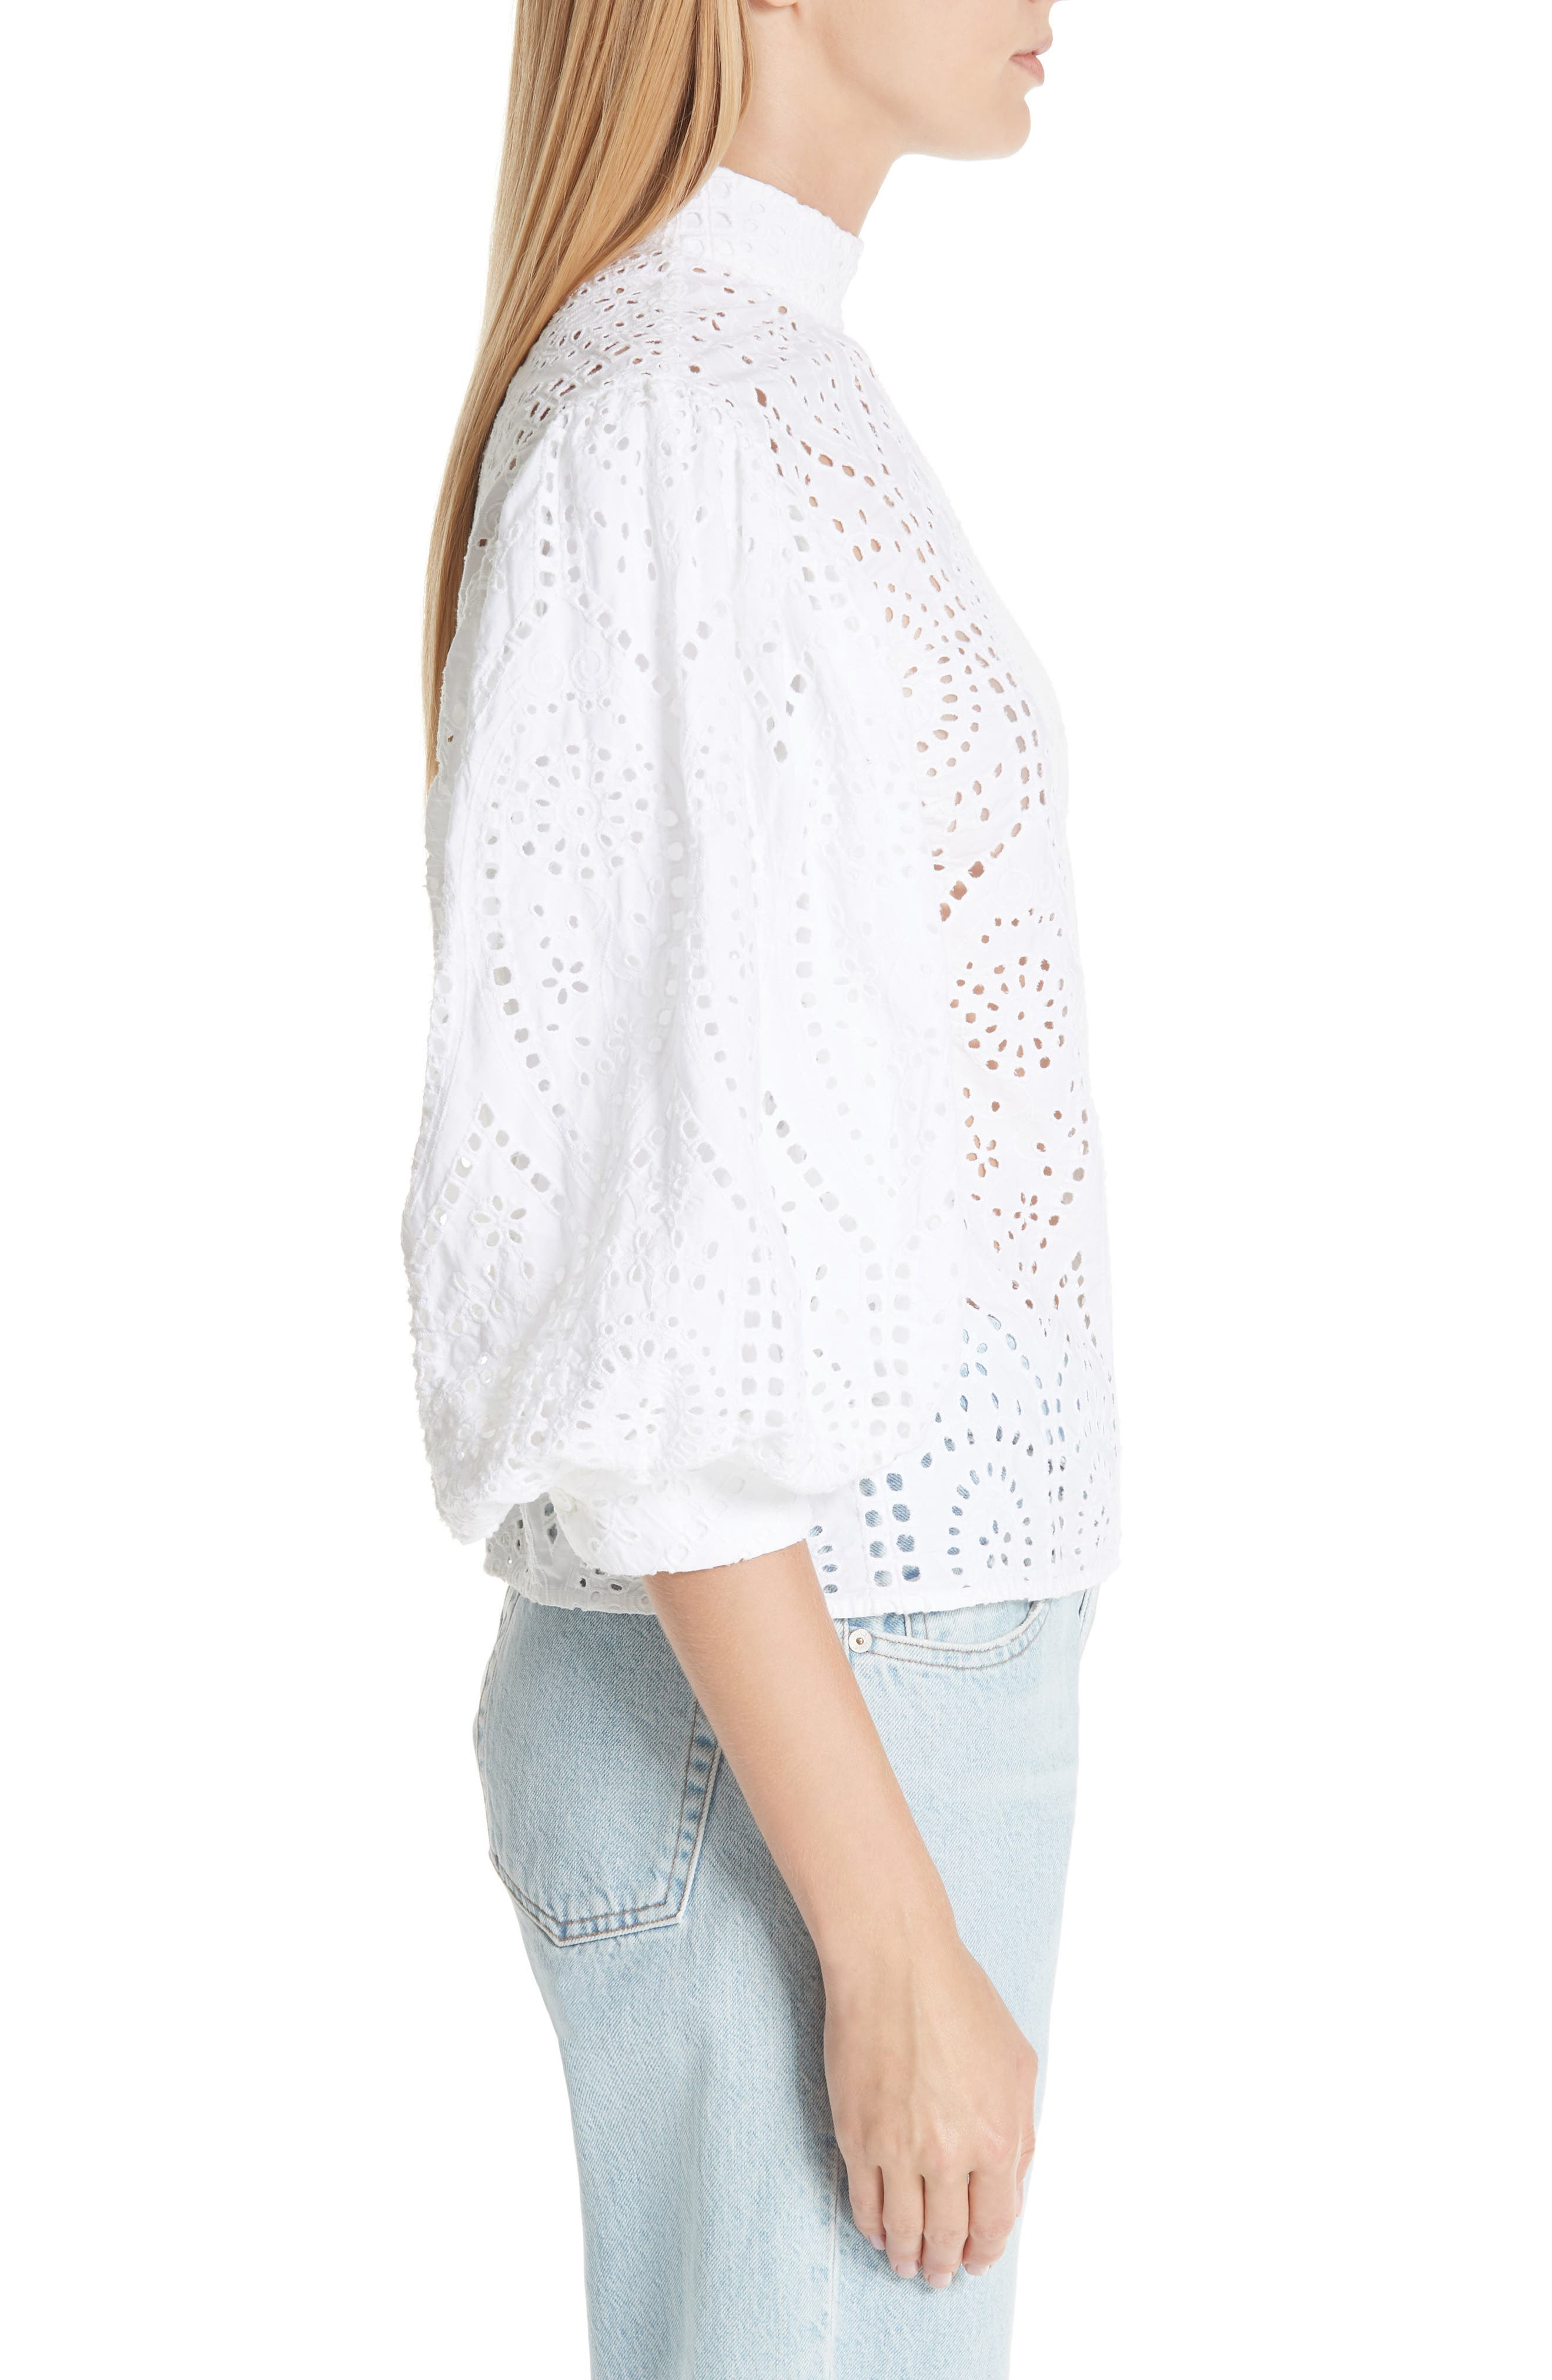 Broderie Anglaise Shirt,                             Alternate thumbnail 3, color,                             BRIGHT WHITE 151